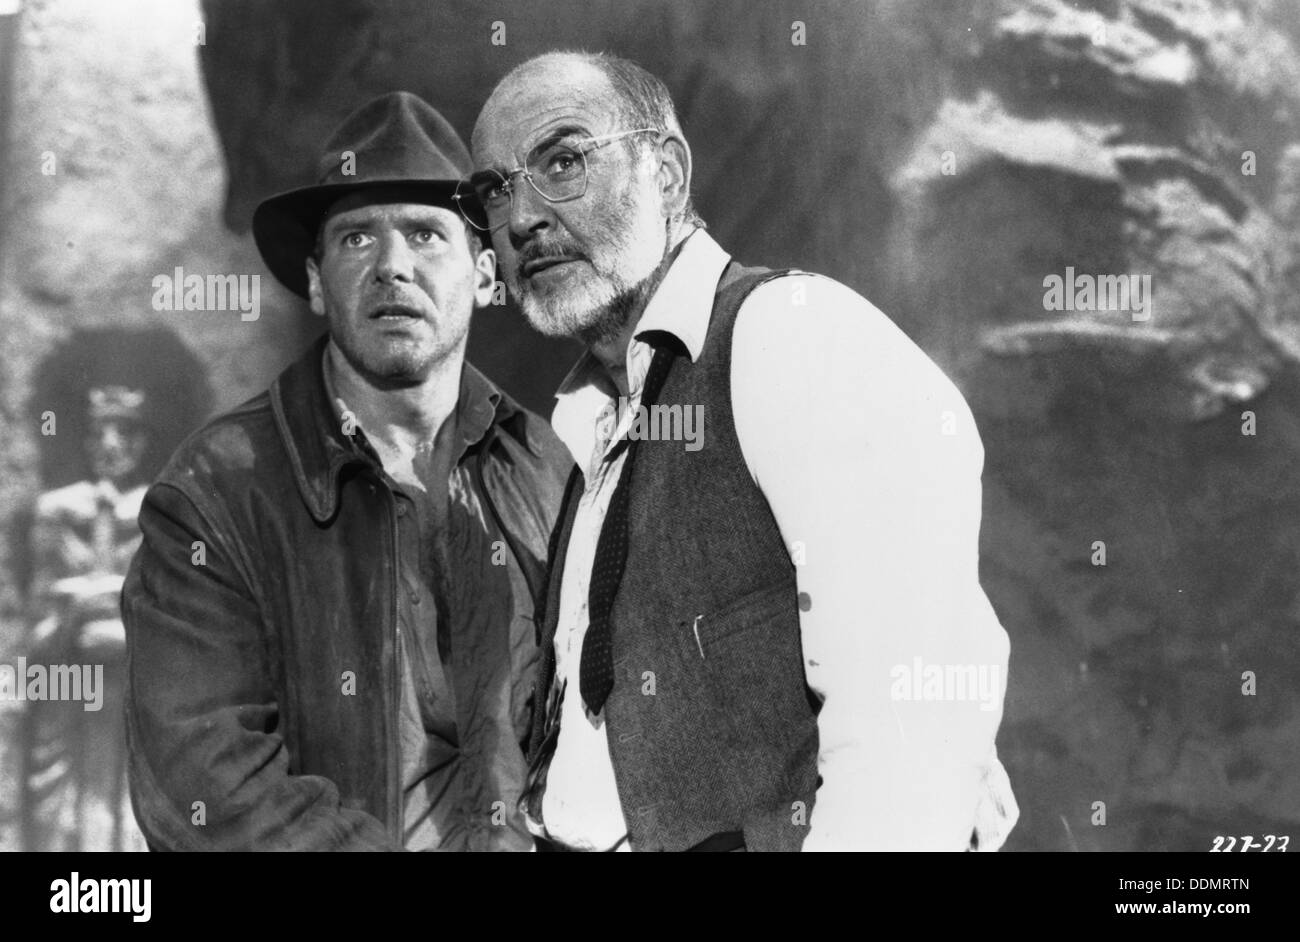 Sean Connery (1930- ) and Harrison Ford (1942- ), Film actors, 1989. - Stock Image